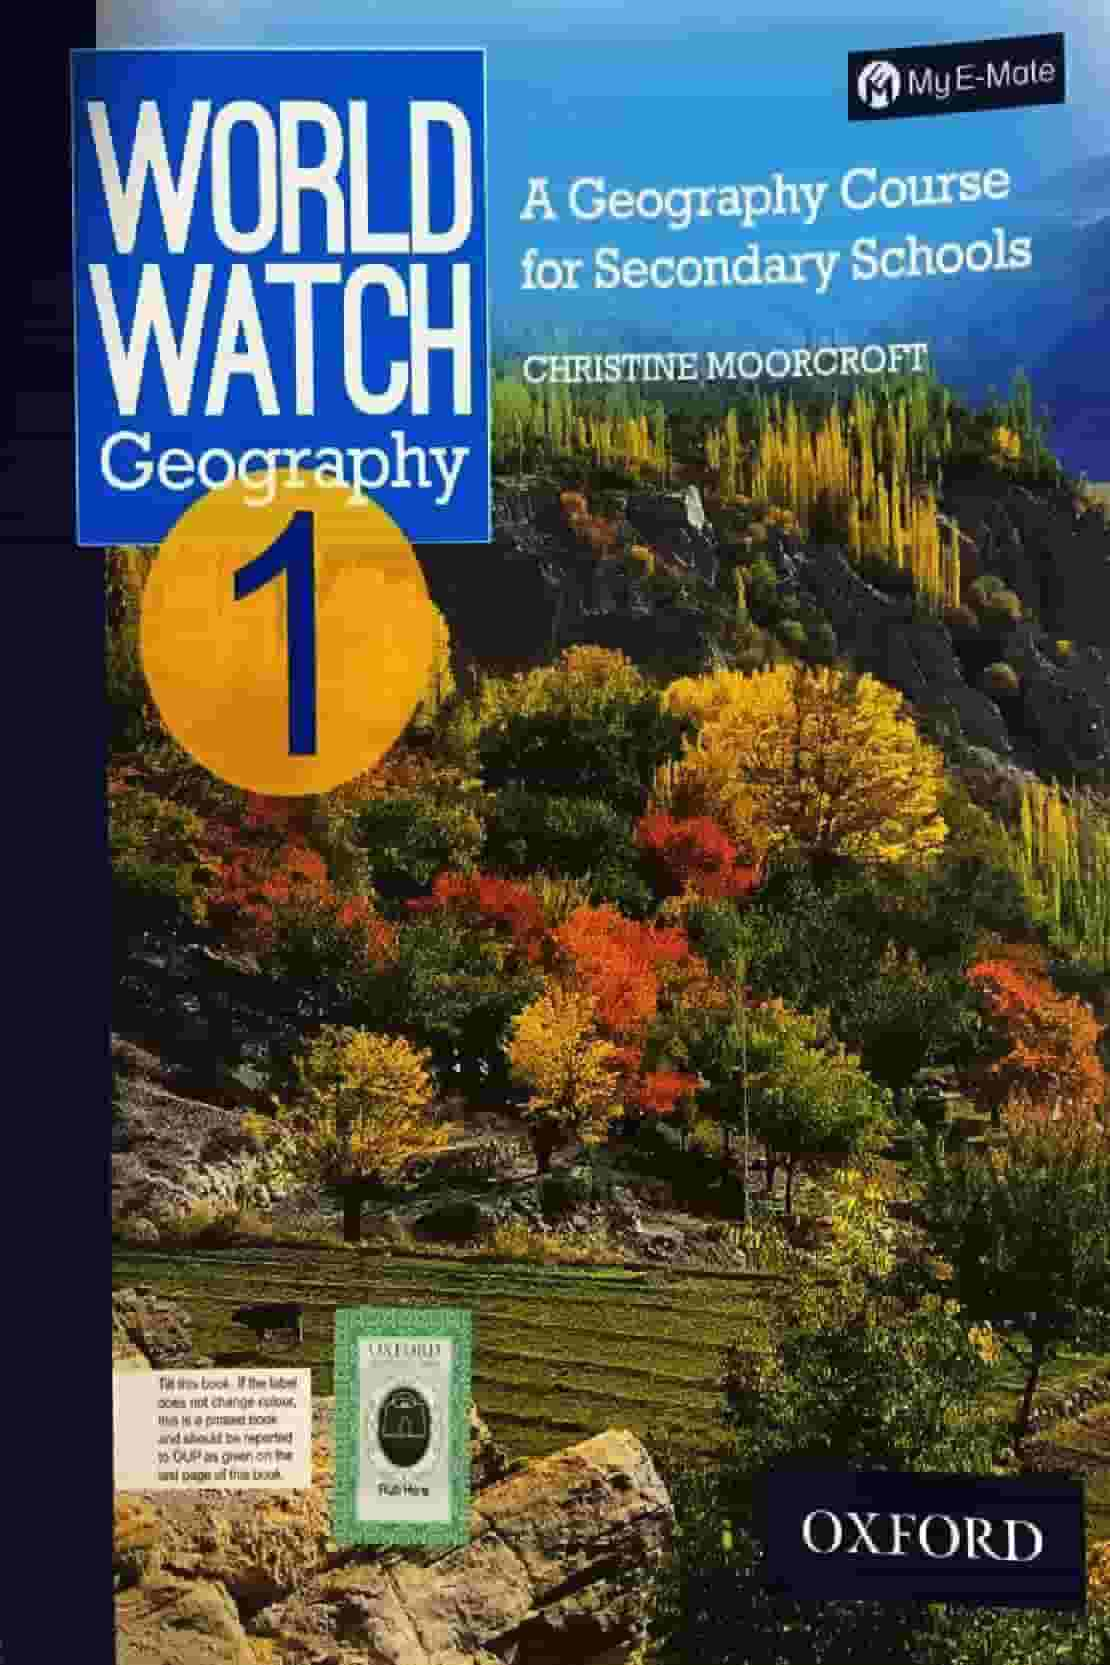 WORLD WATCH GEOGRAPHY 1